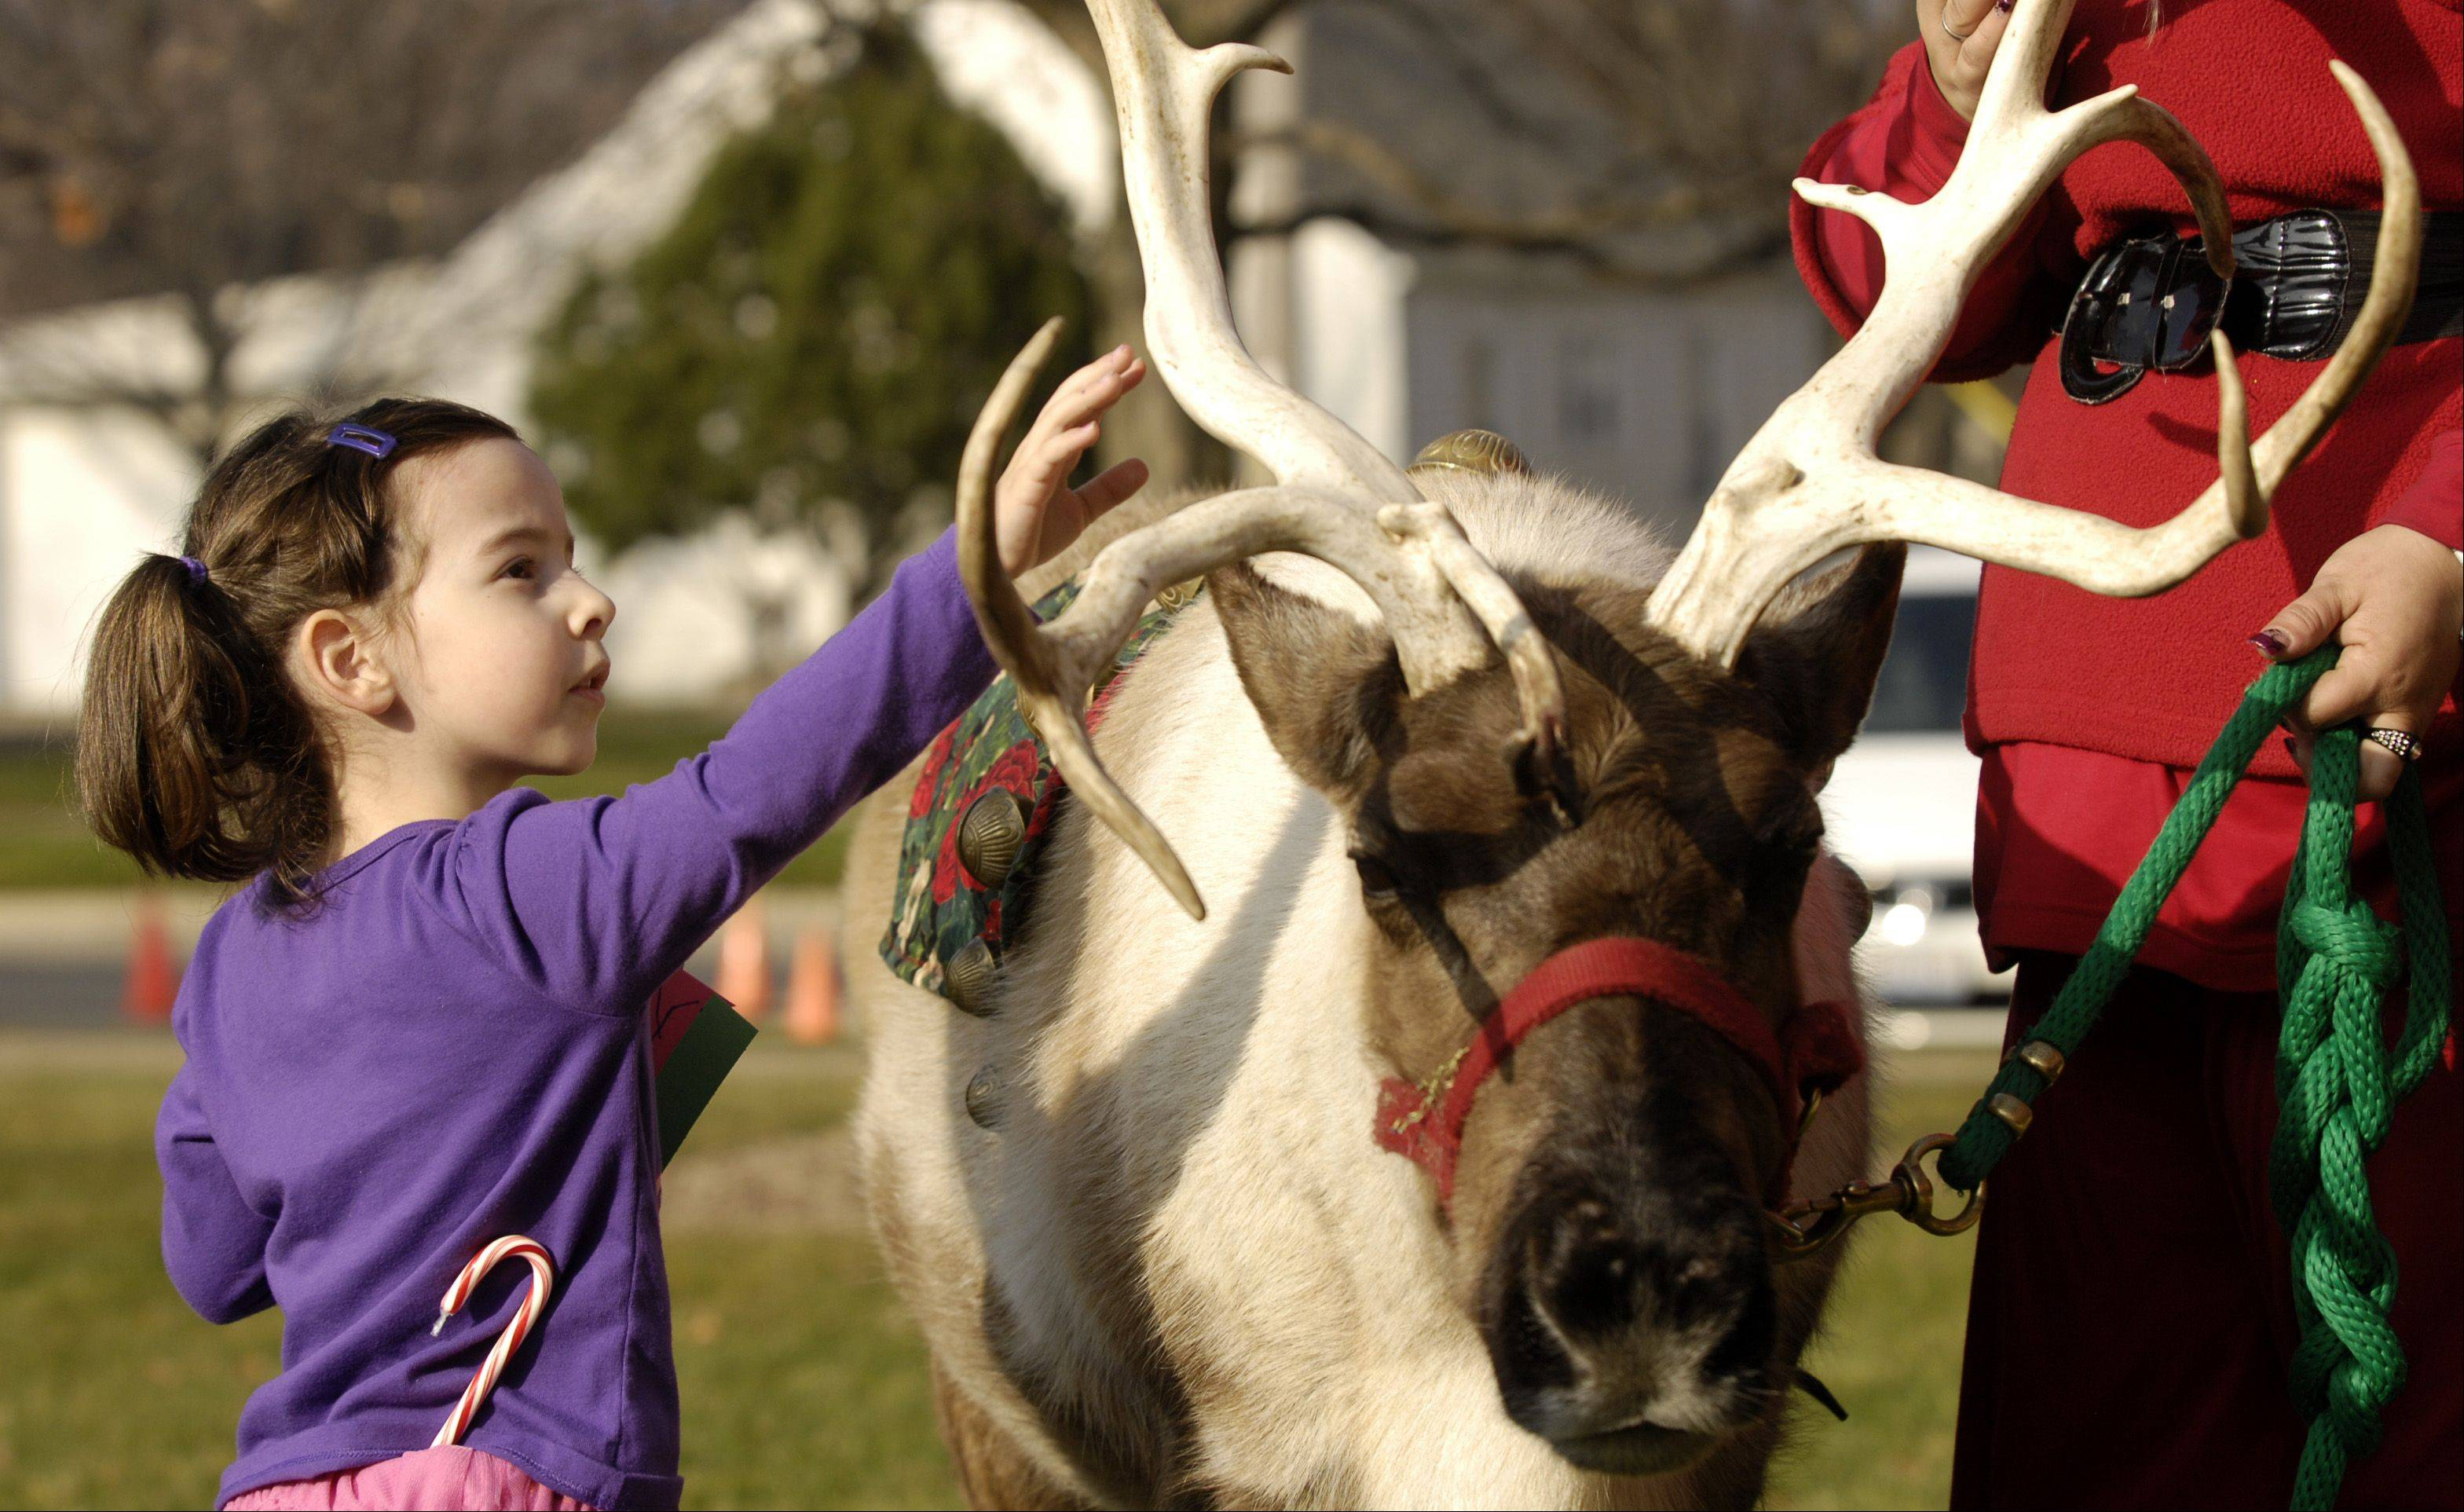 Live reindeer will be part of the annual Lights of Lisle Festival that will take center stage Dec. 7 and 8.